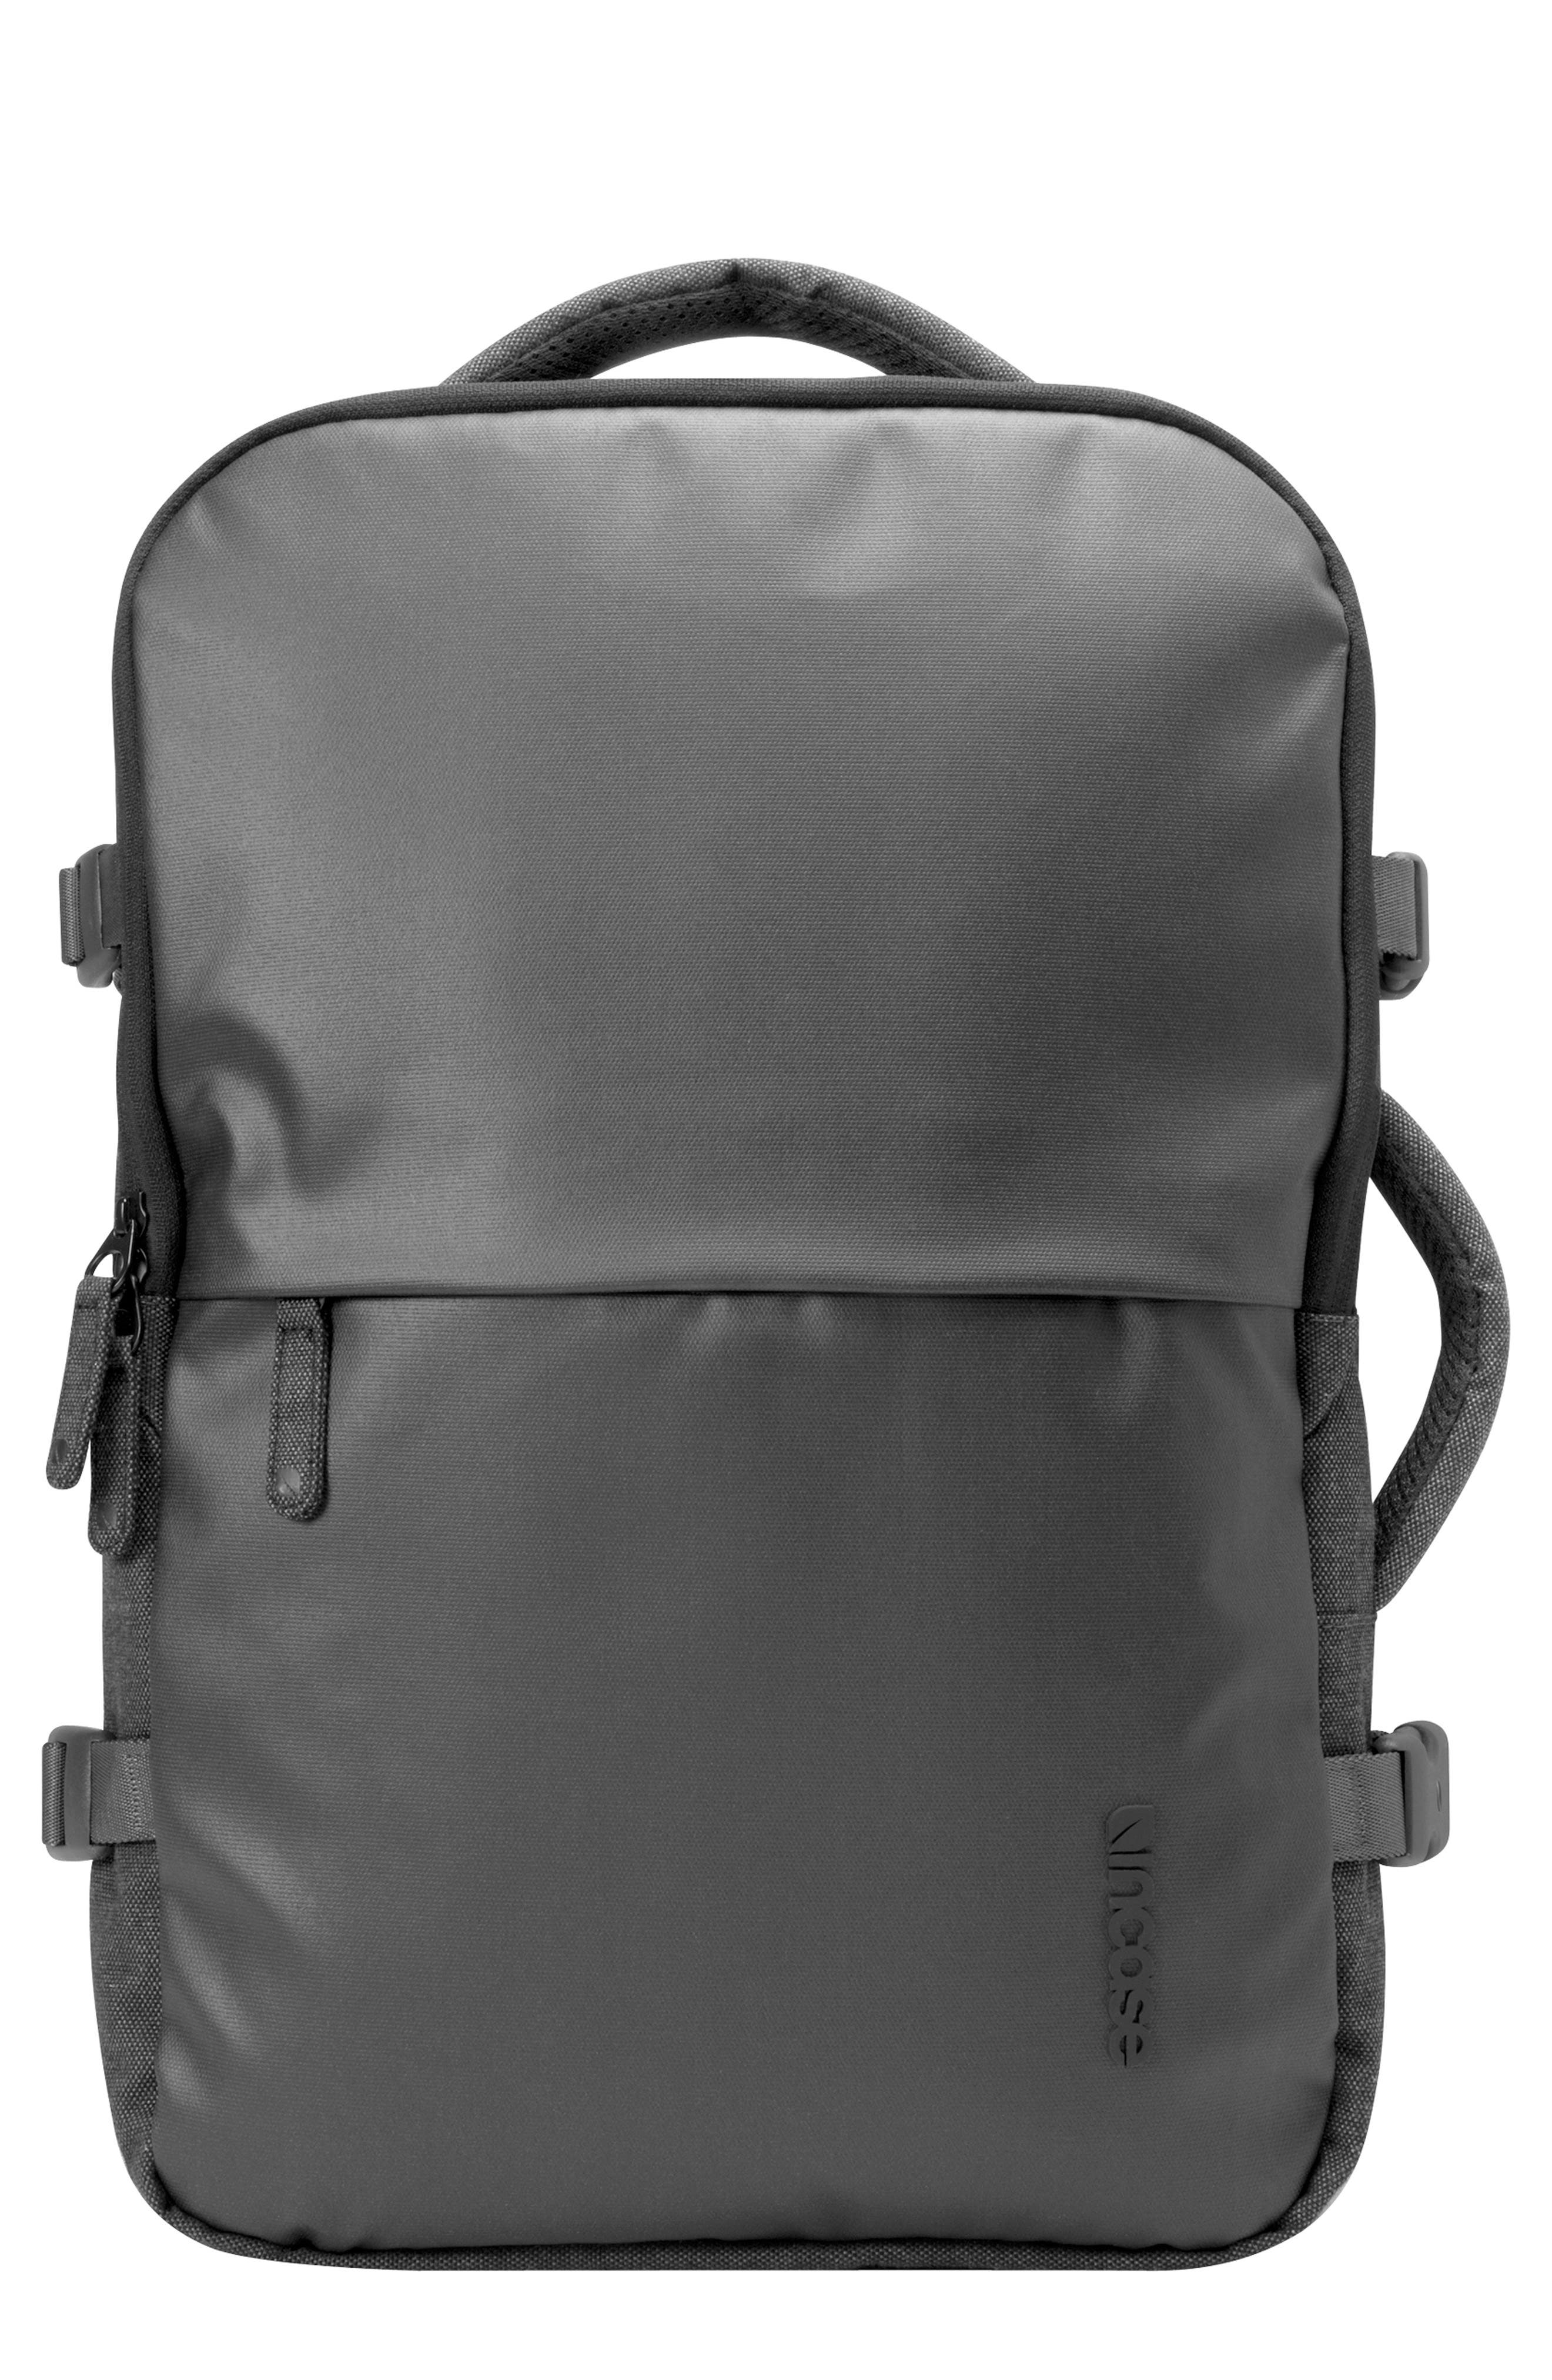 EO Travel Backpack,                             Main thumbnail 1, color,